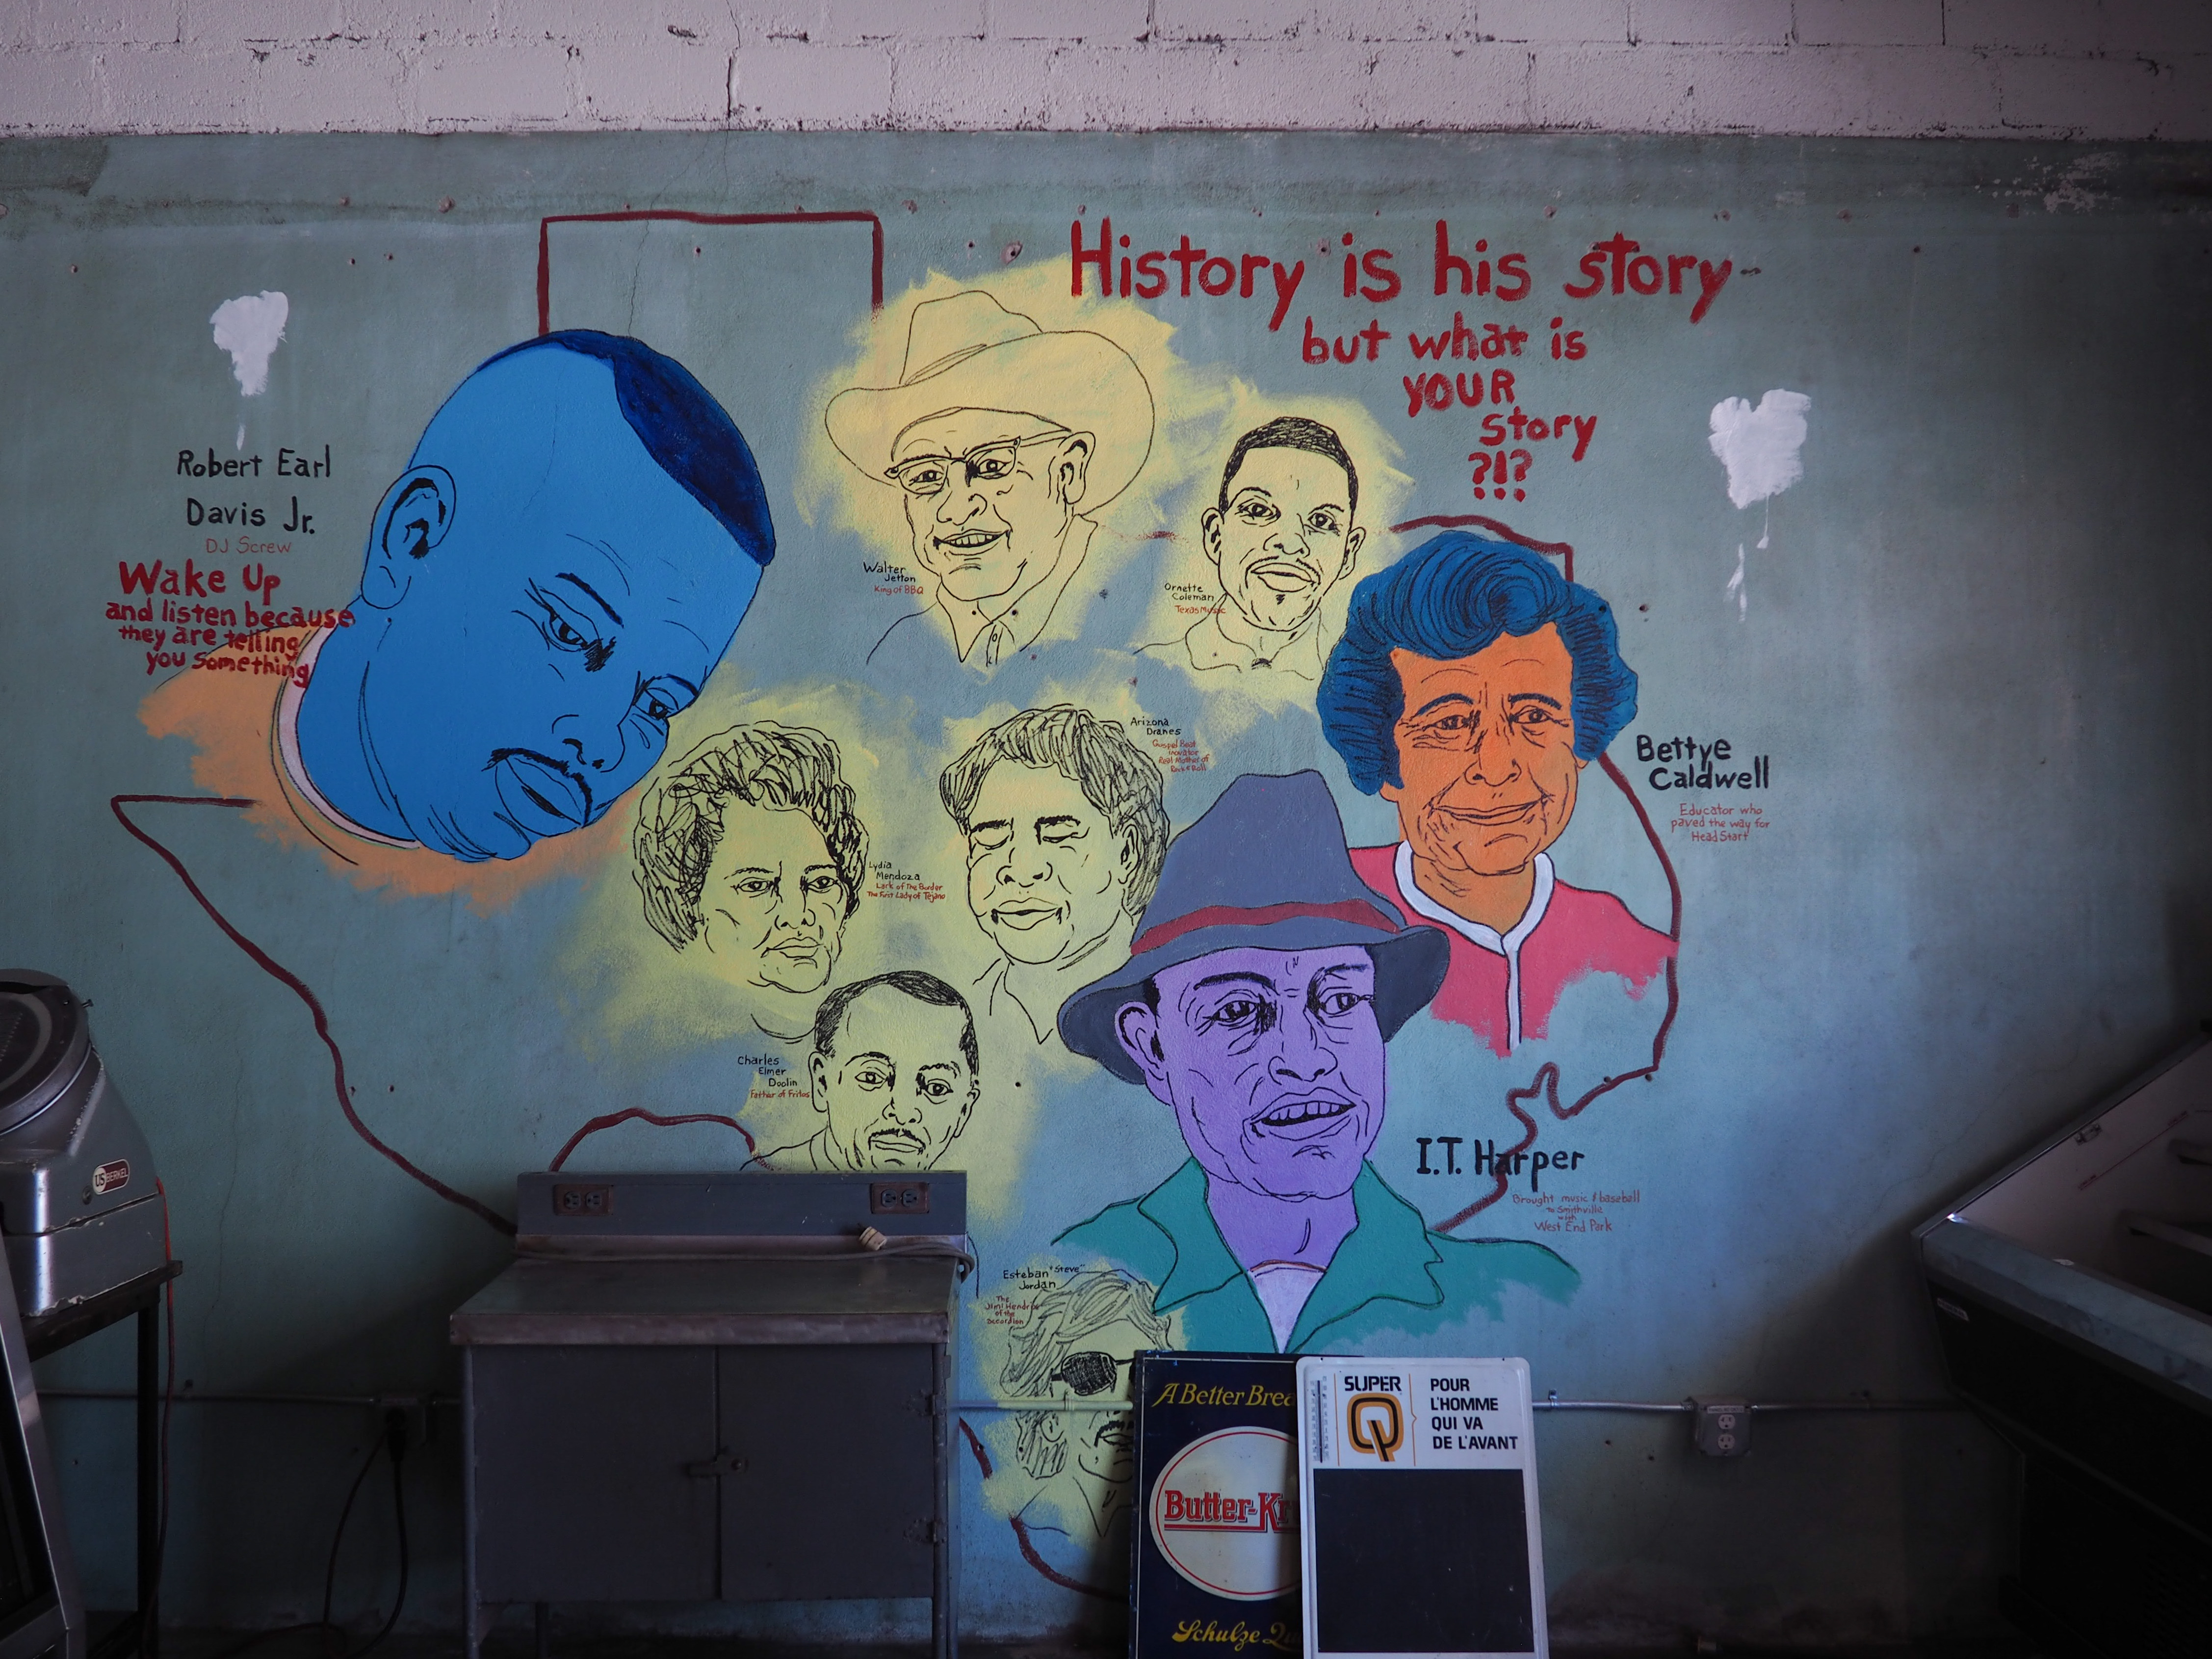 mural with various faces on side of building in rural town, Smithville, Texas